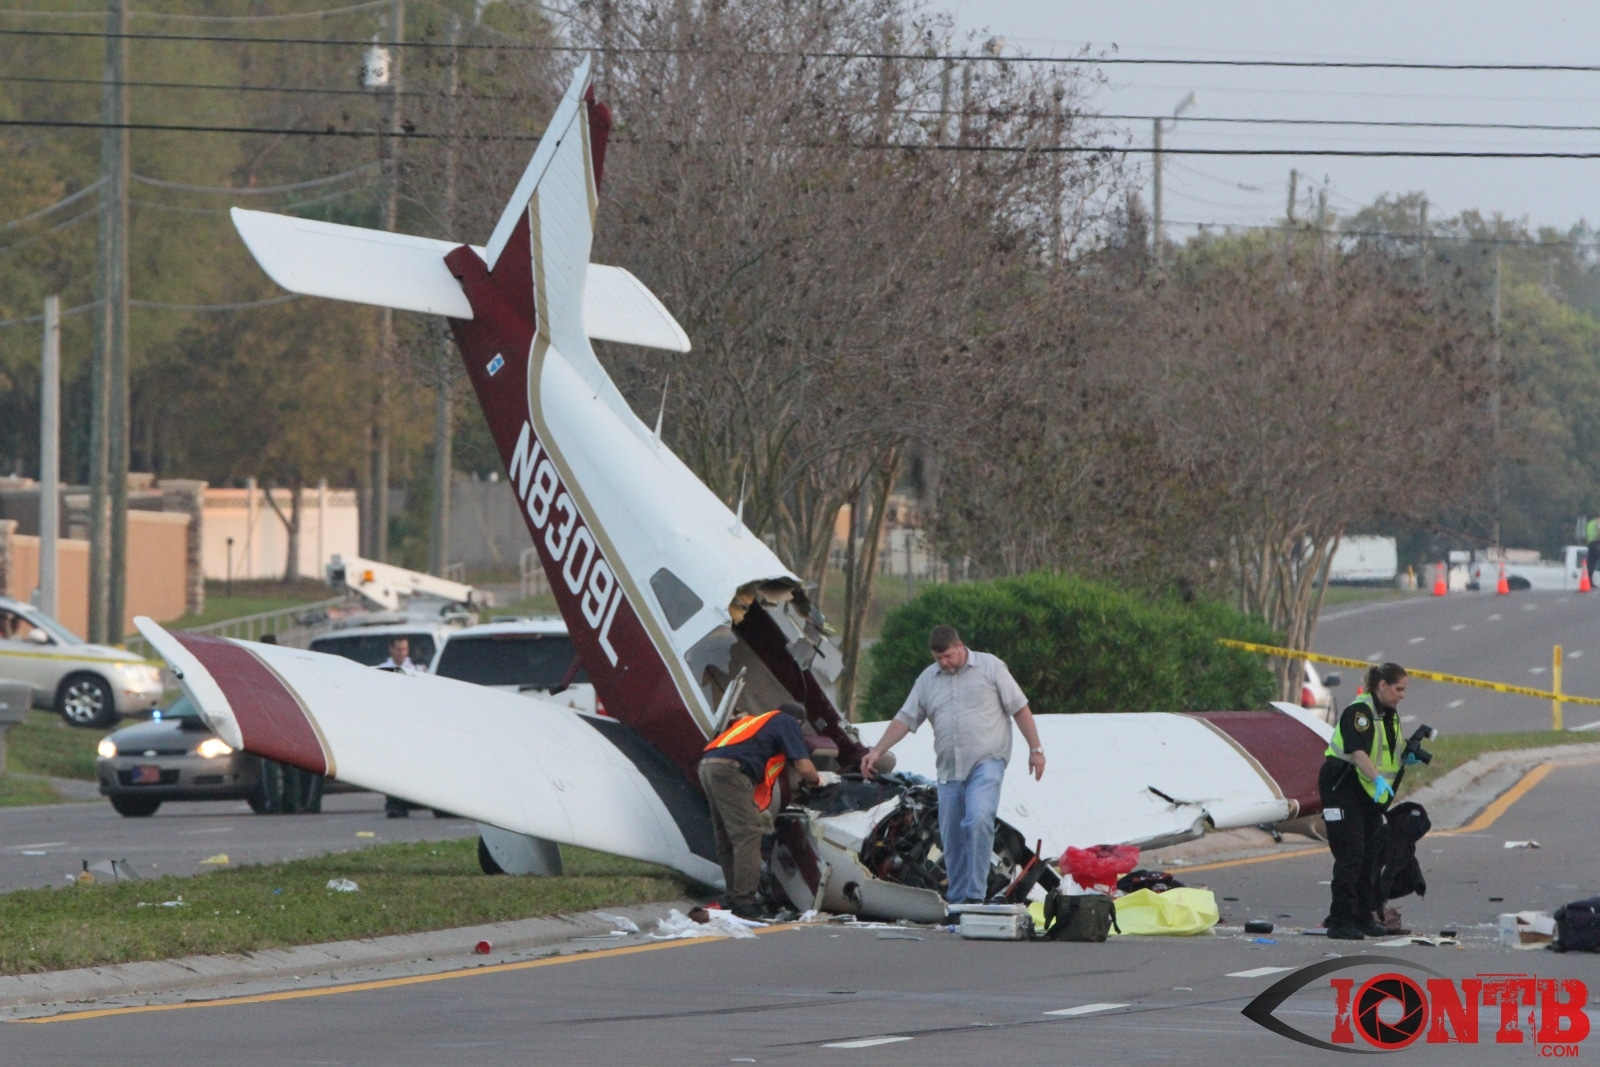 NTSB: Pilot's Fuel Planning Abilities Likely Affected by Cocaine in 2014 Safety Harbor Crash